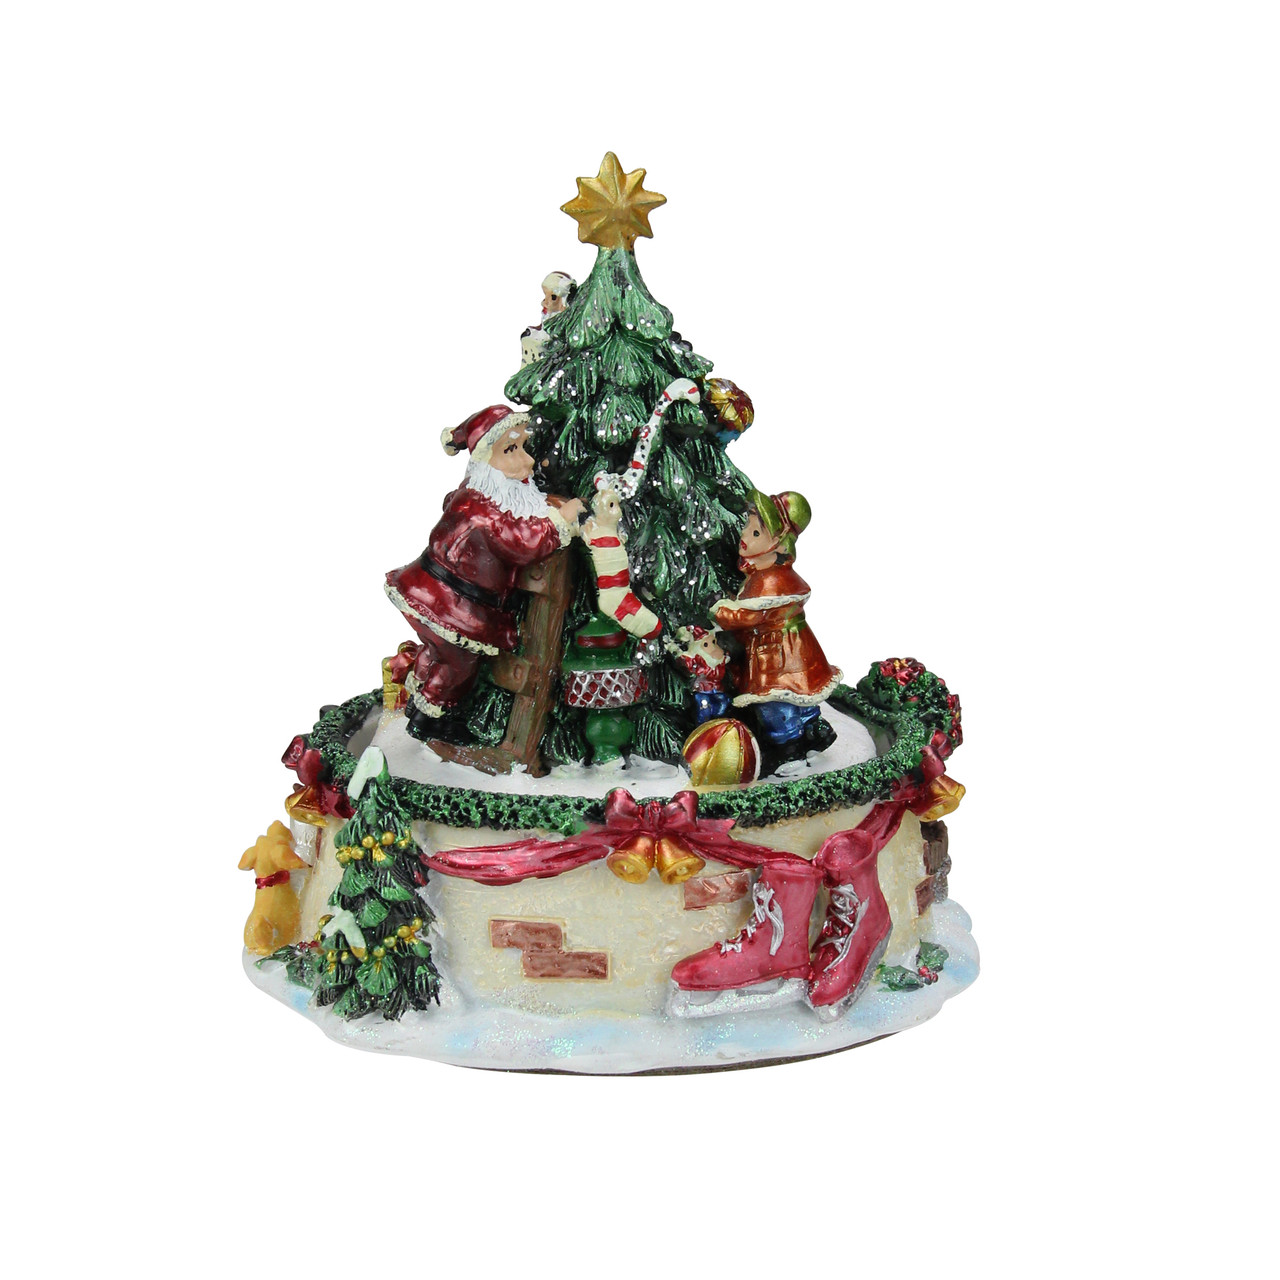 6 animated santa claus and christmas tree winter scene rotating music box 32259944 - Animated Christmas Scene Decorations